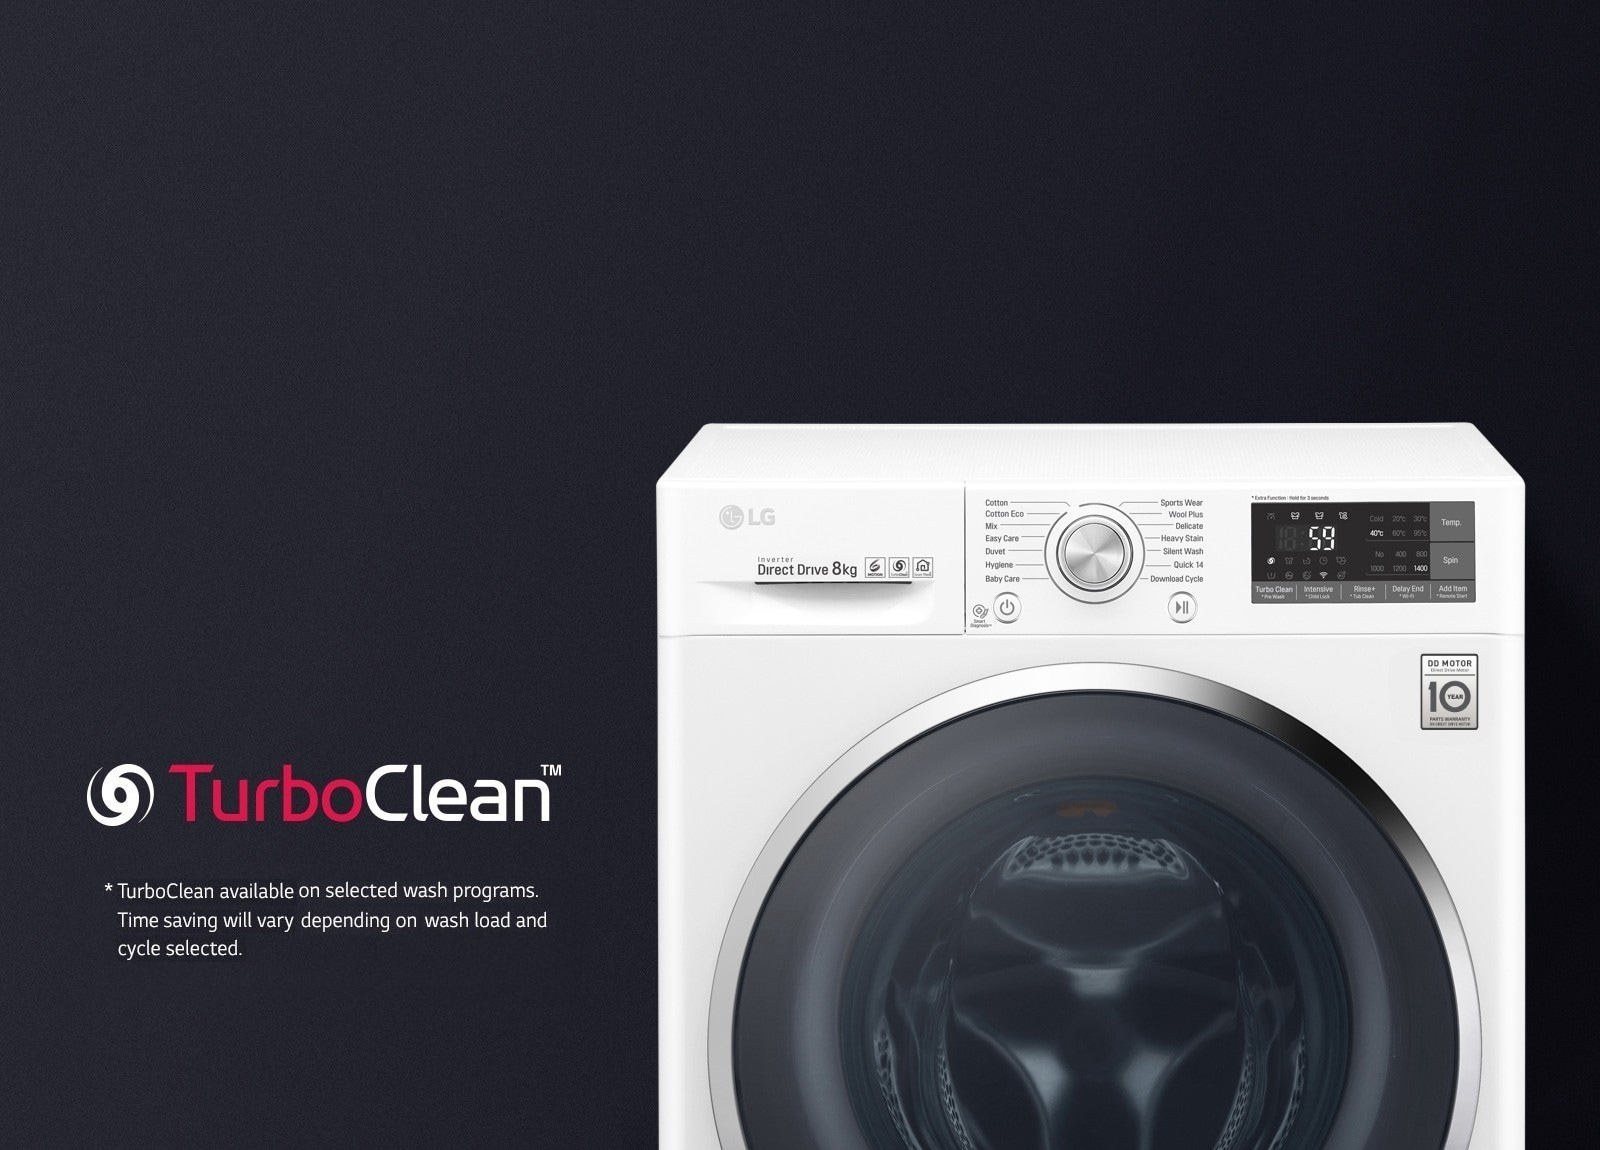 Lg 8kg Front Load Washing Machine With Turboclean Lg New Zealand